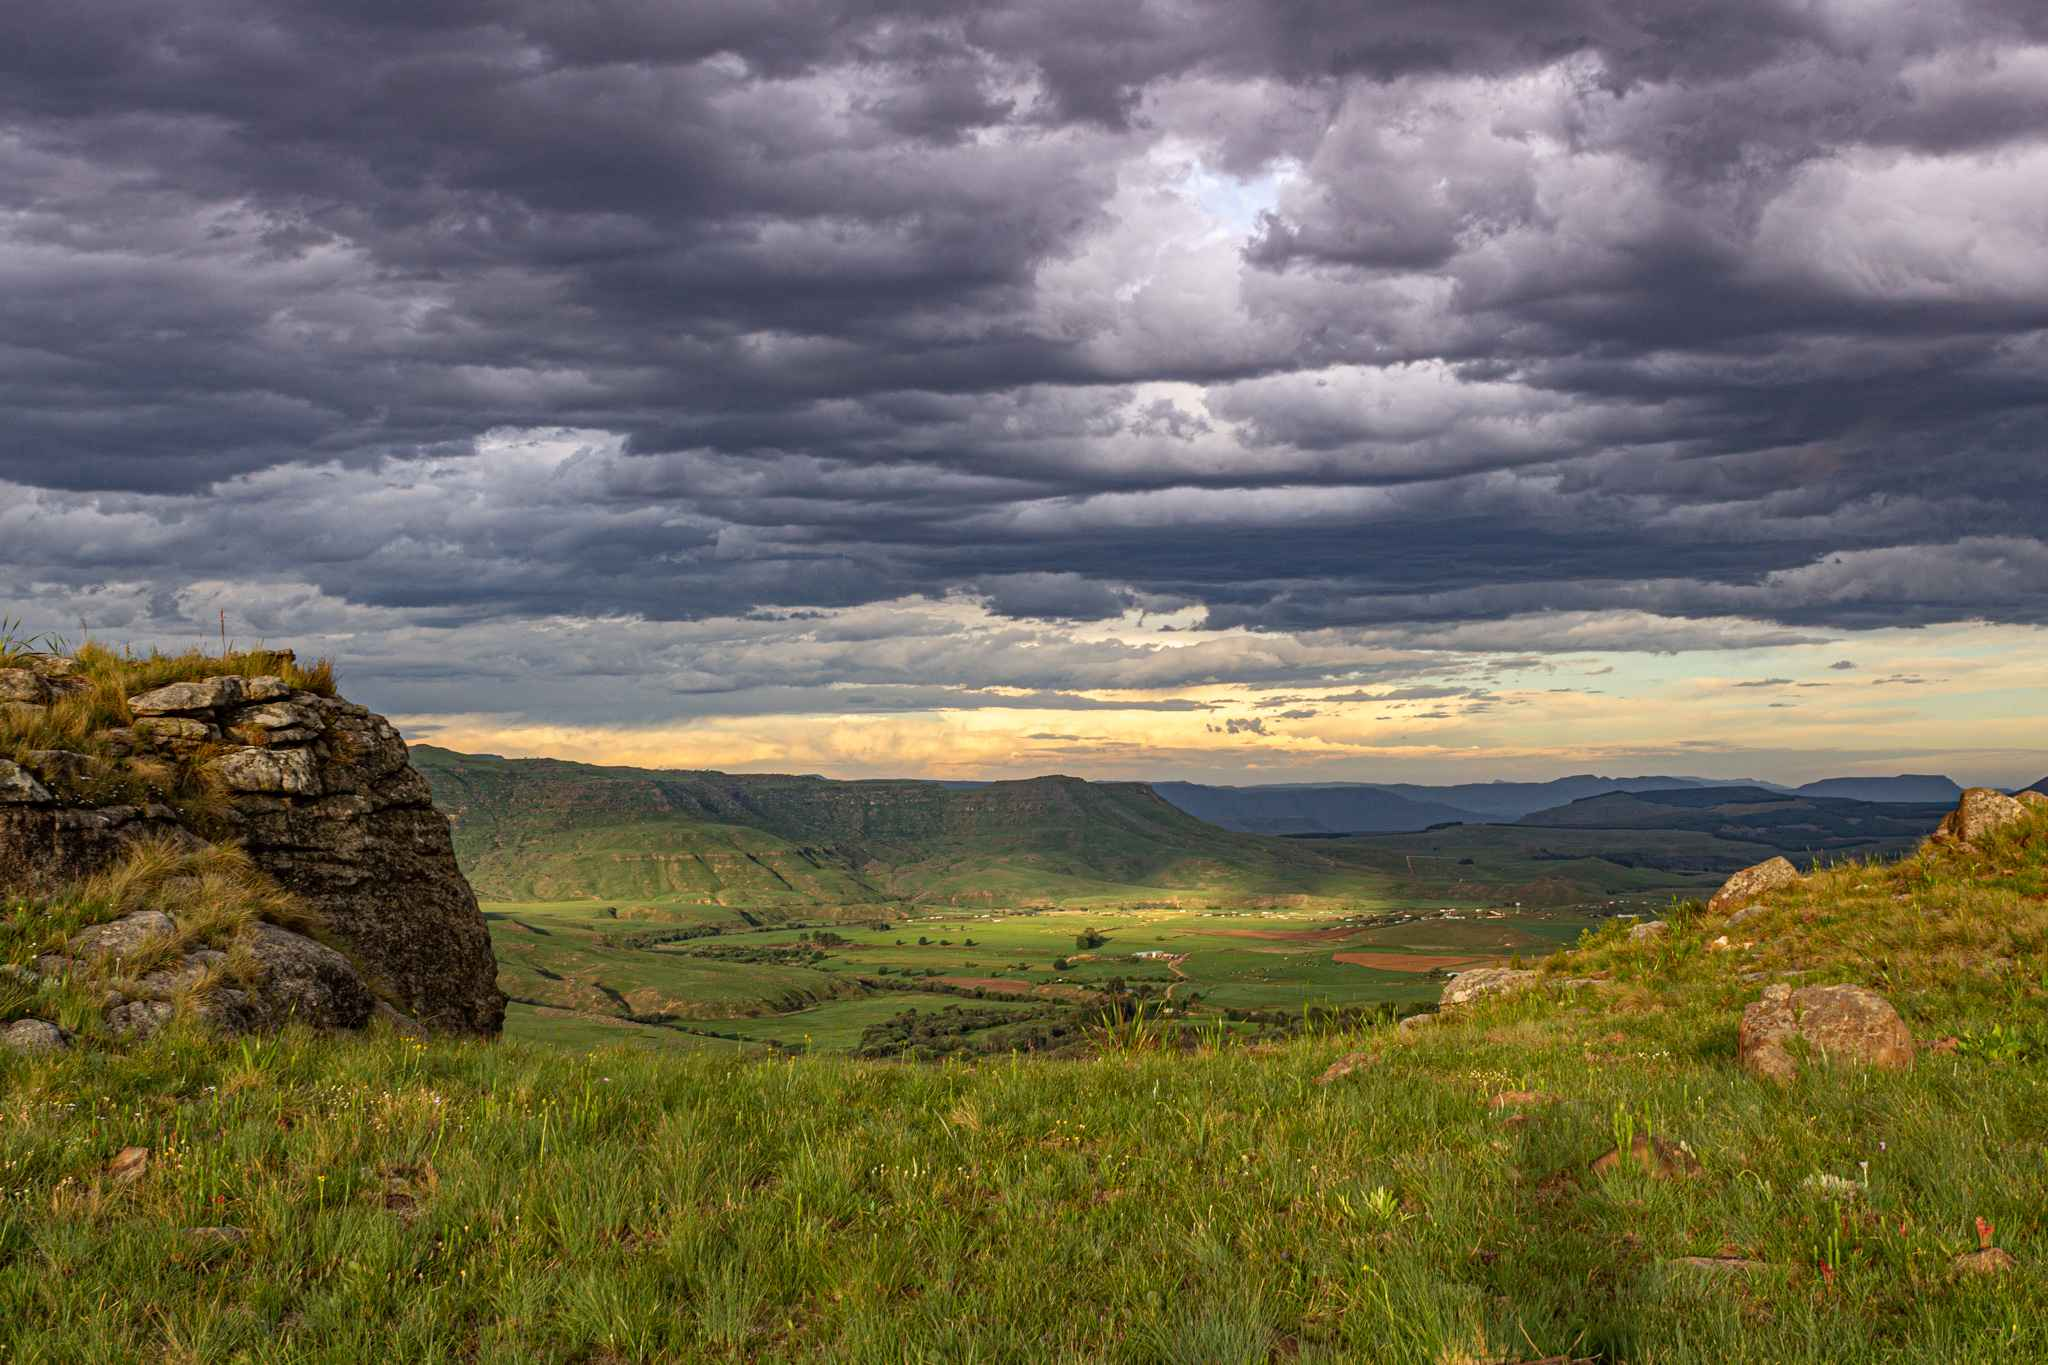 a beautiful sunset of purples and oranges over a green valley in the drakensberg mountains - a beautiful night on a south africa vacation